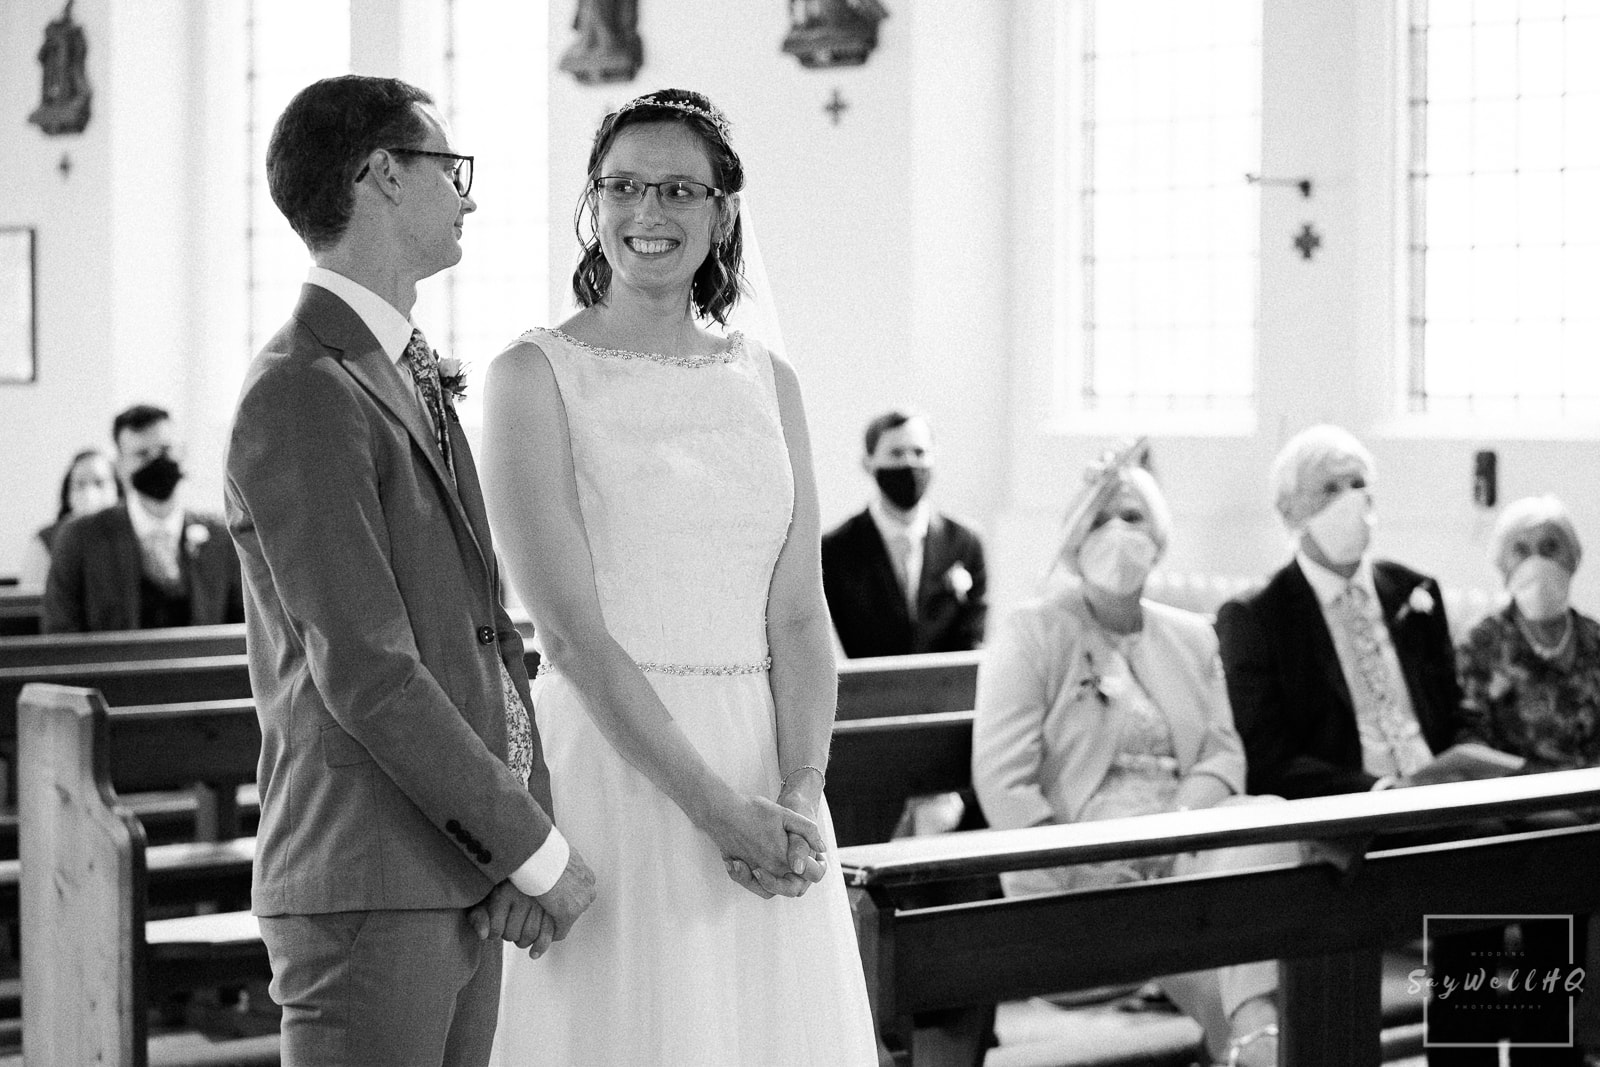 Bride and groom looking lovingly at each other during their wedding ceremony in Melbourne Derbyshire